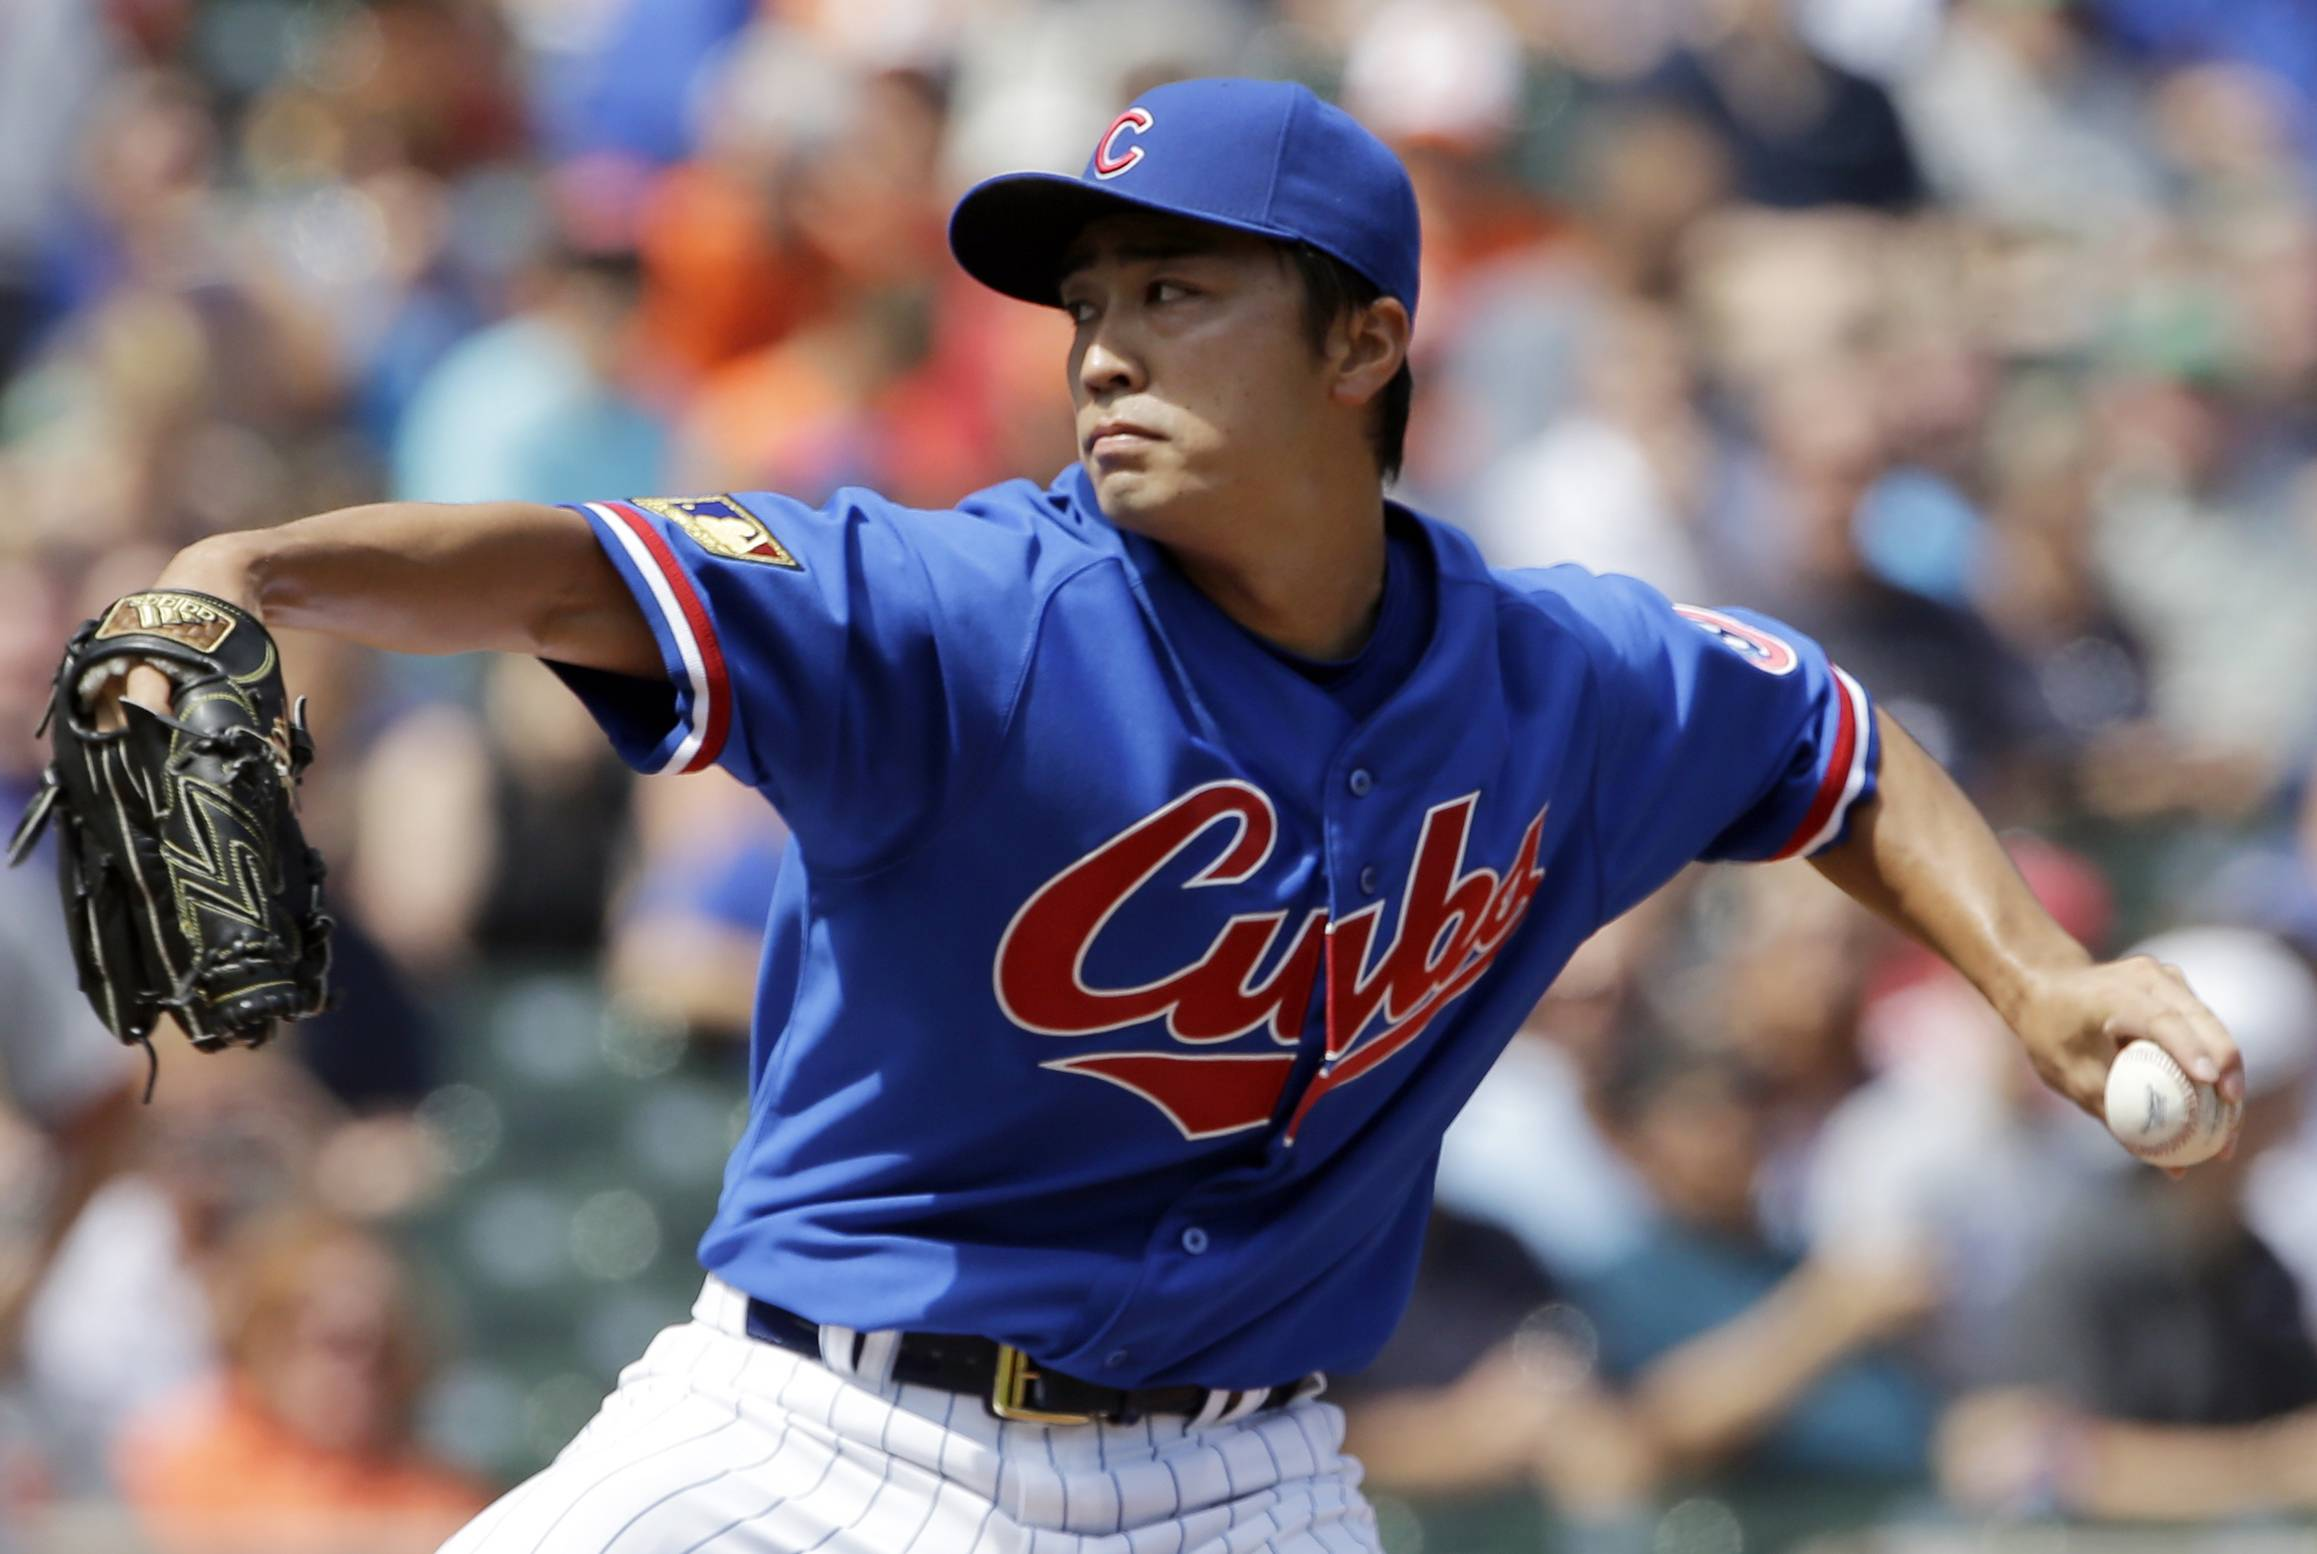 Chicago Cubs starter Tsuyoshi Wada, of Japan, throws against the Baltimore Orioles during the first inning — the first of more than 6 without giving up a hit.